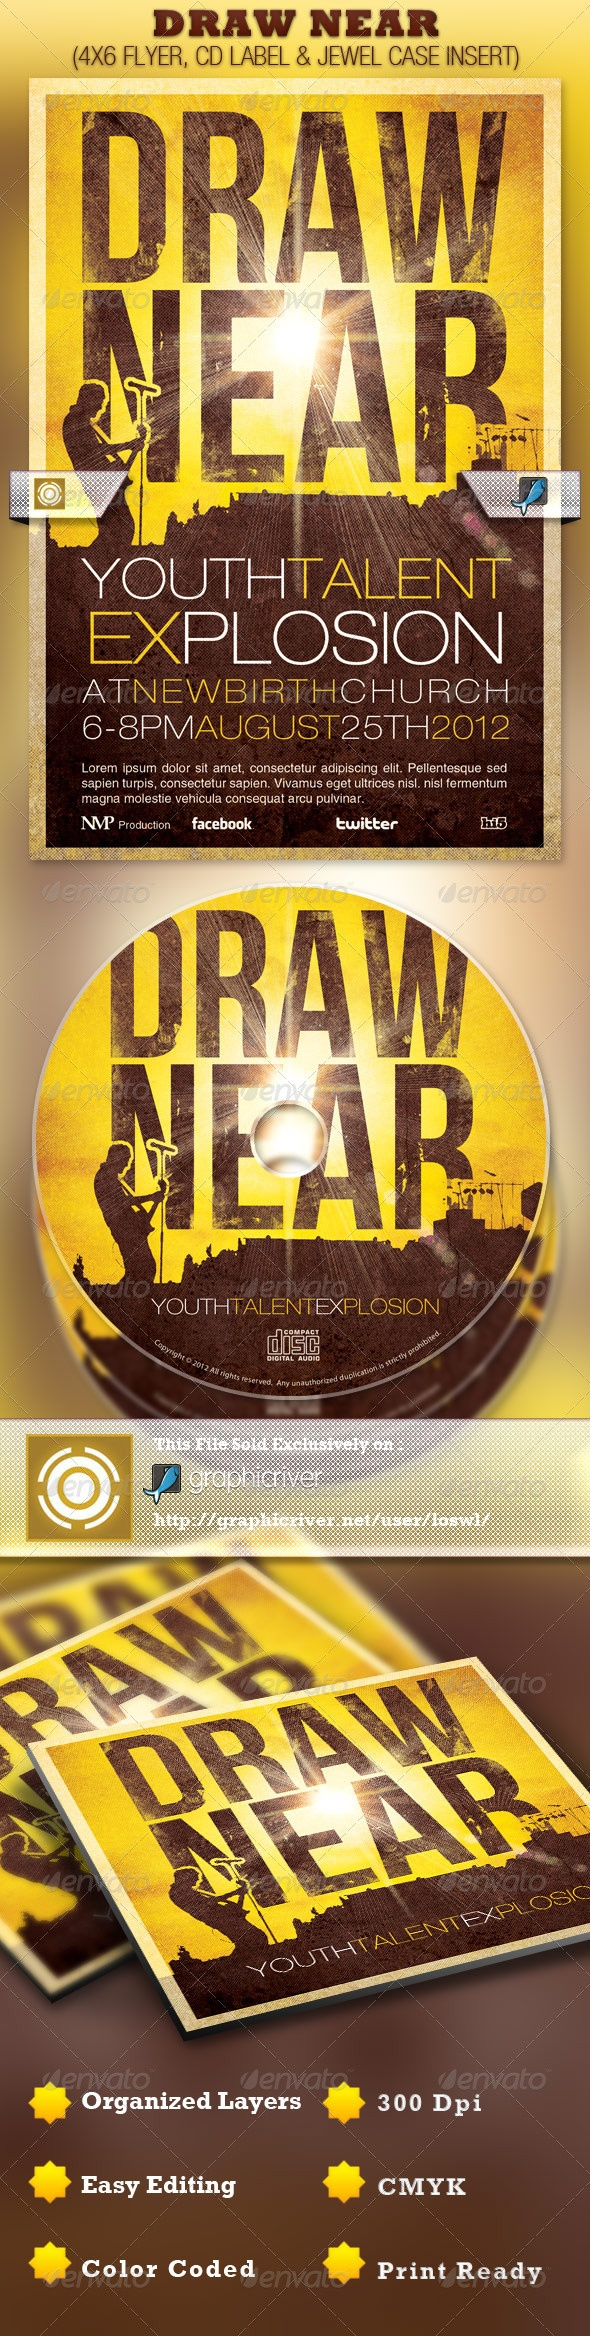 Draw Near Church Event Flyer and CD Template